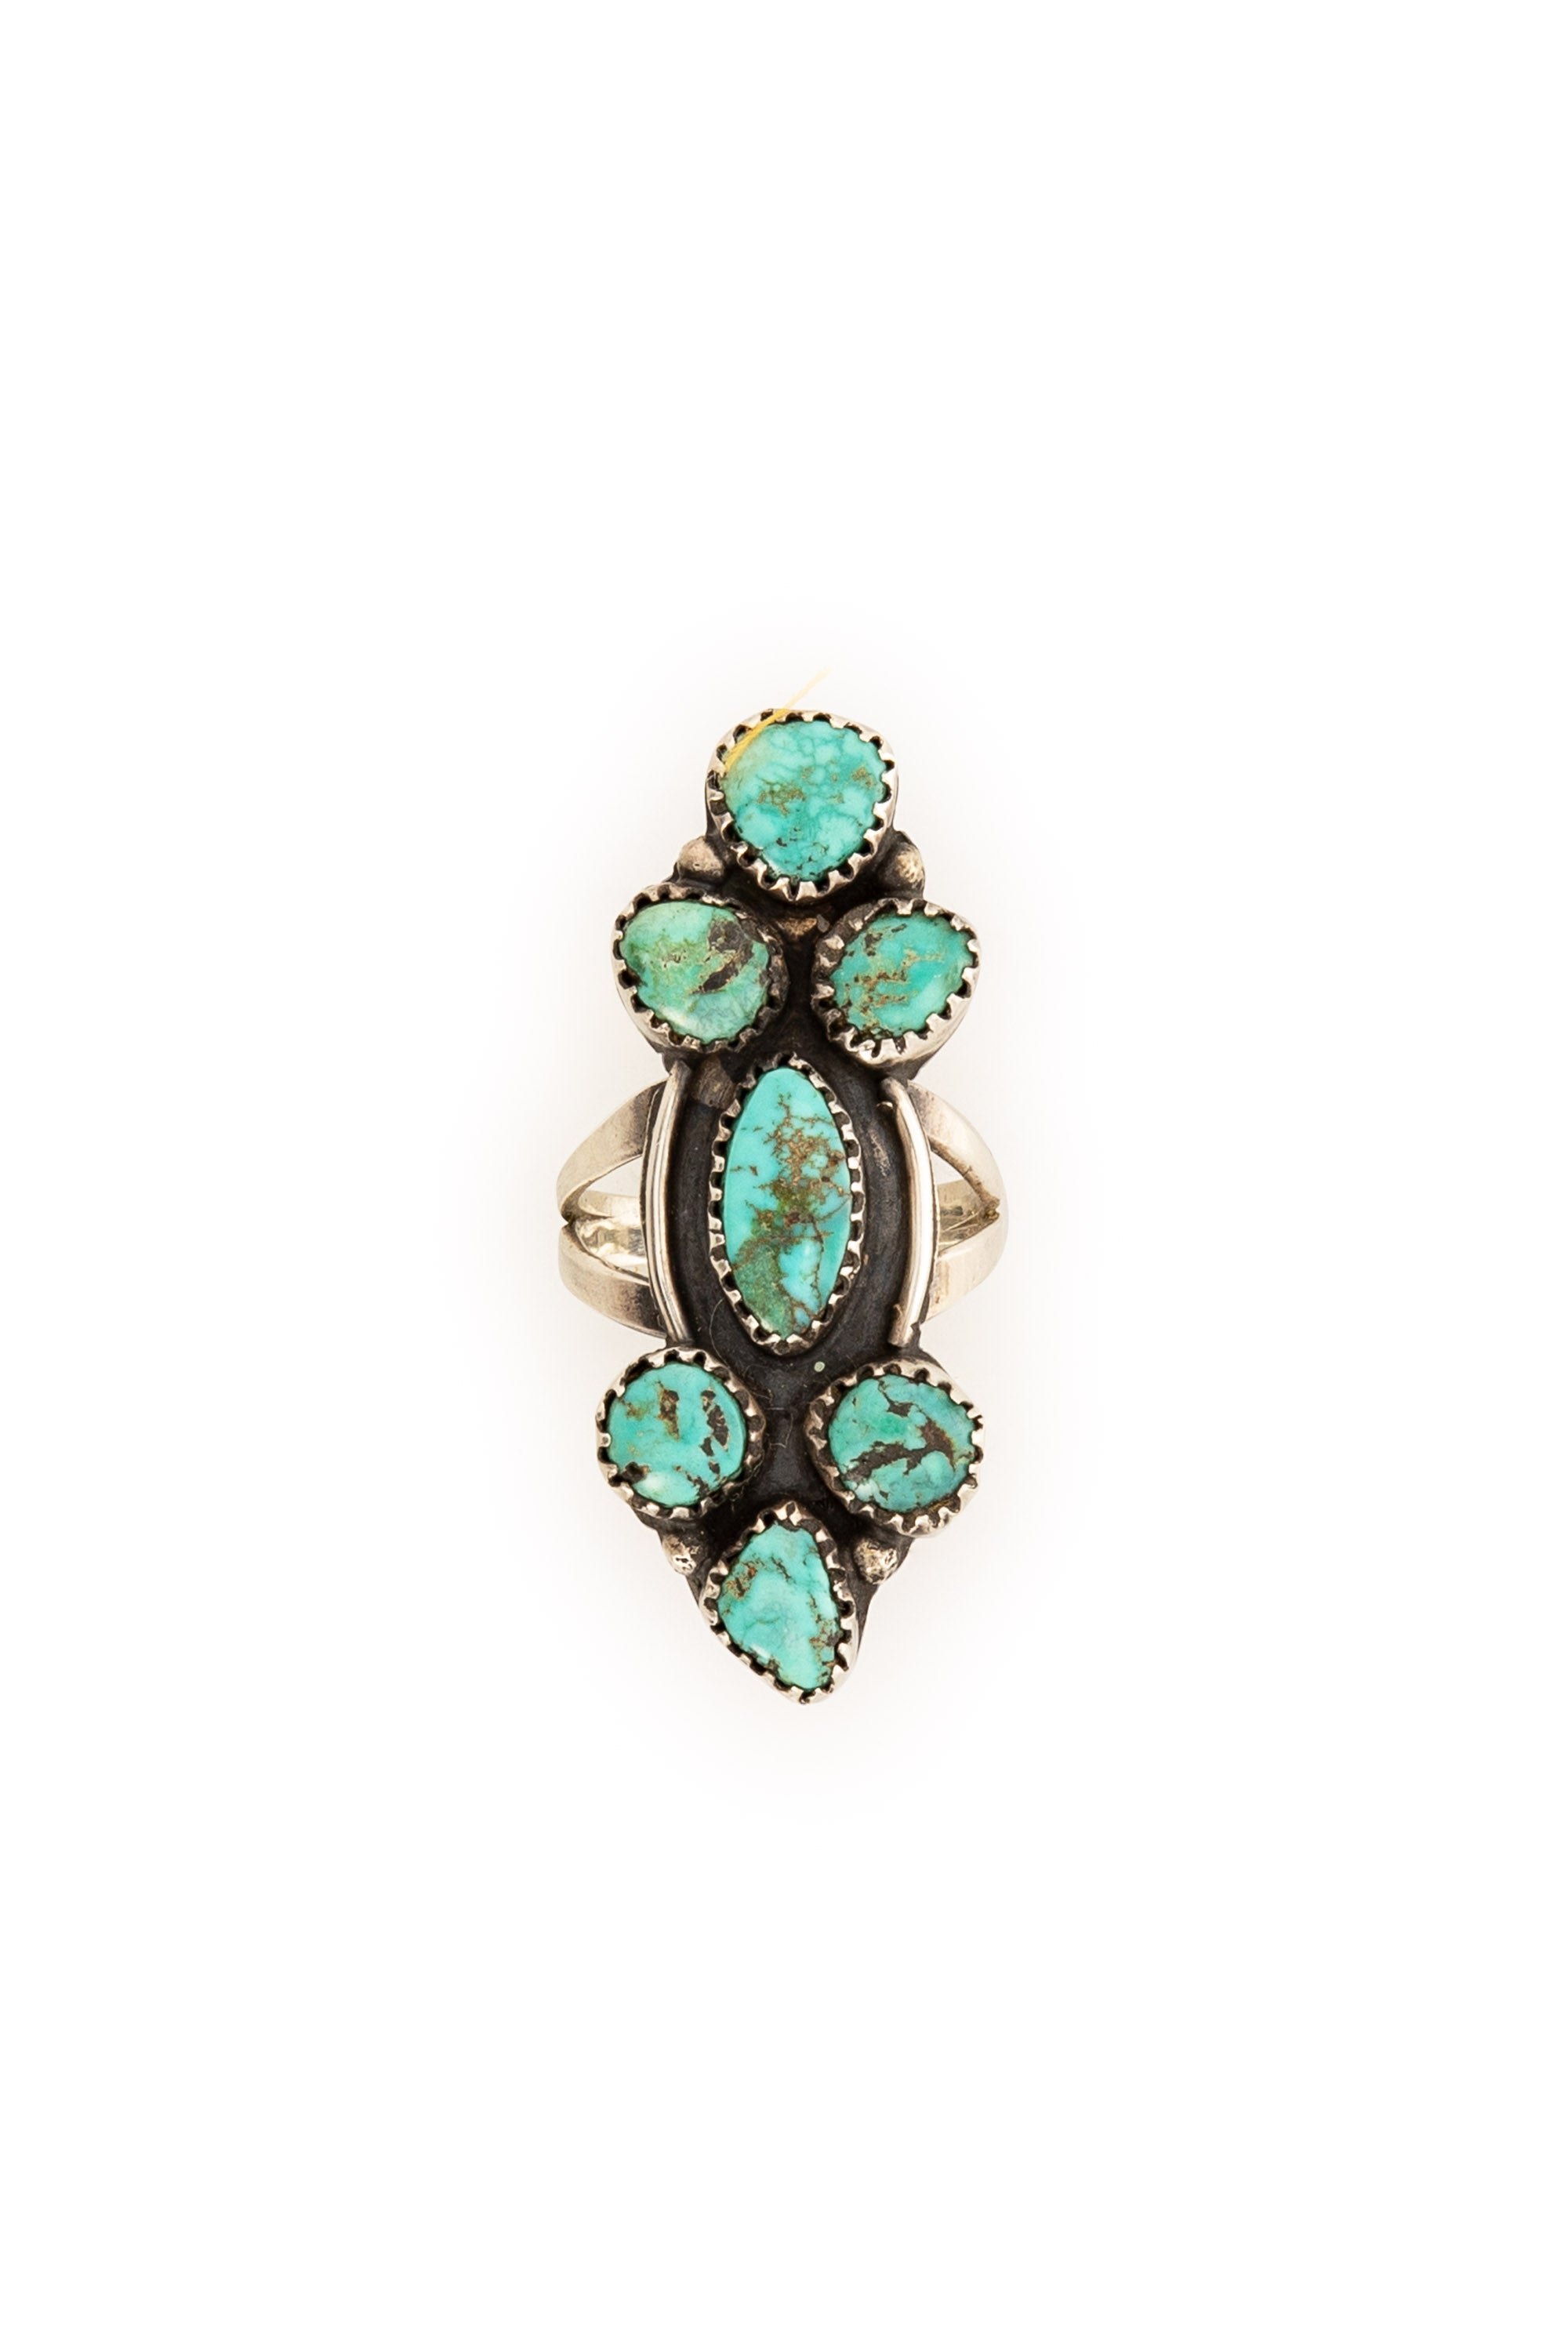 Ring, Turquoise, Nugget, Vintage, 616